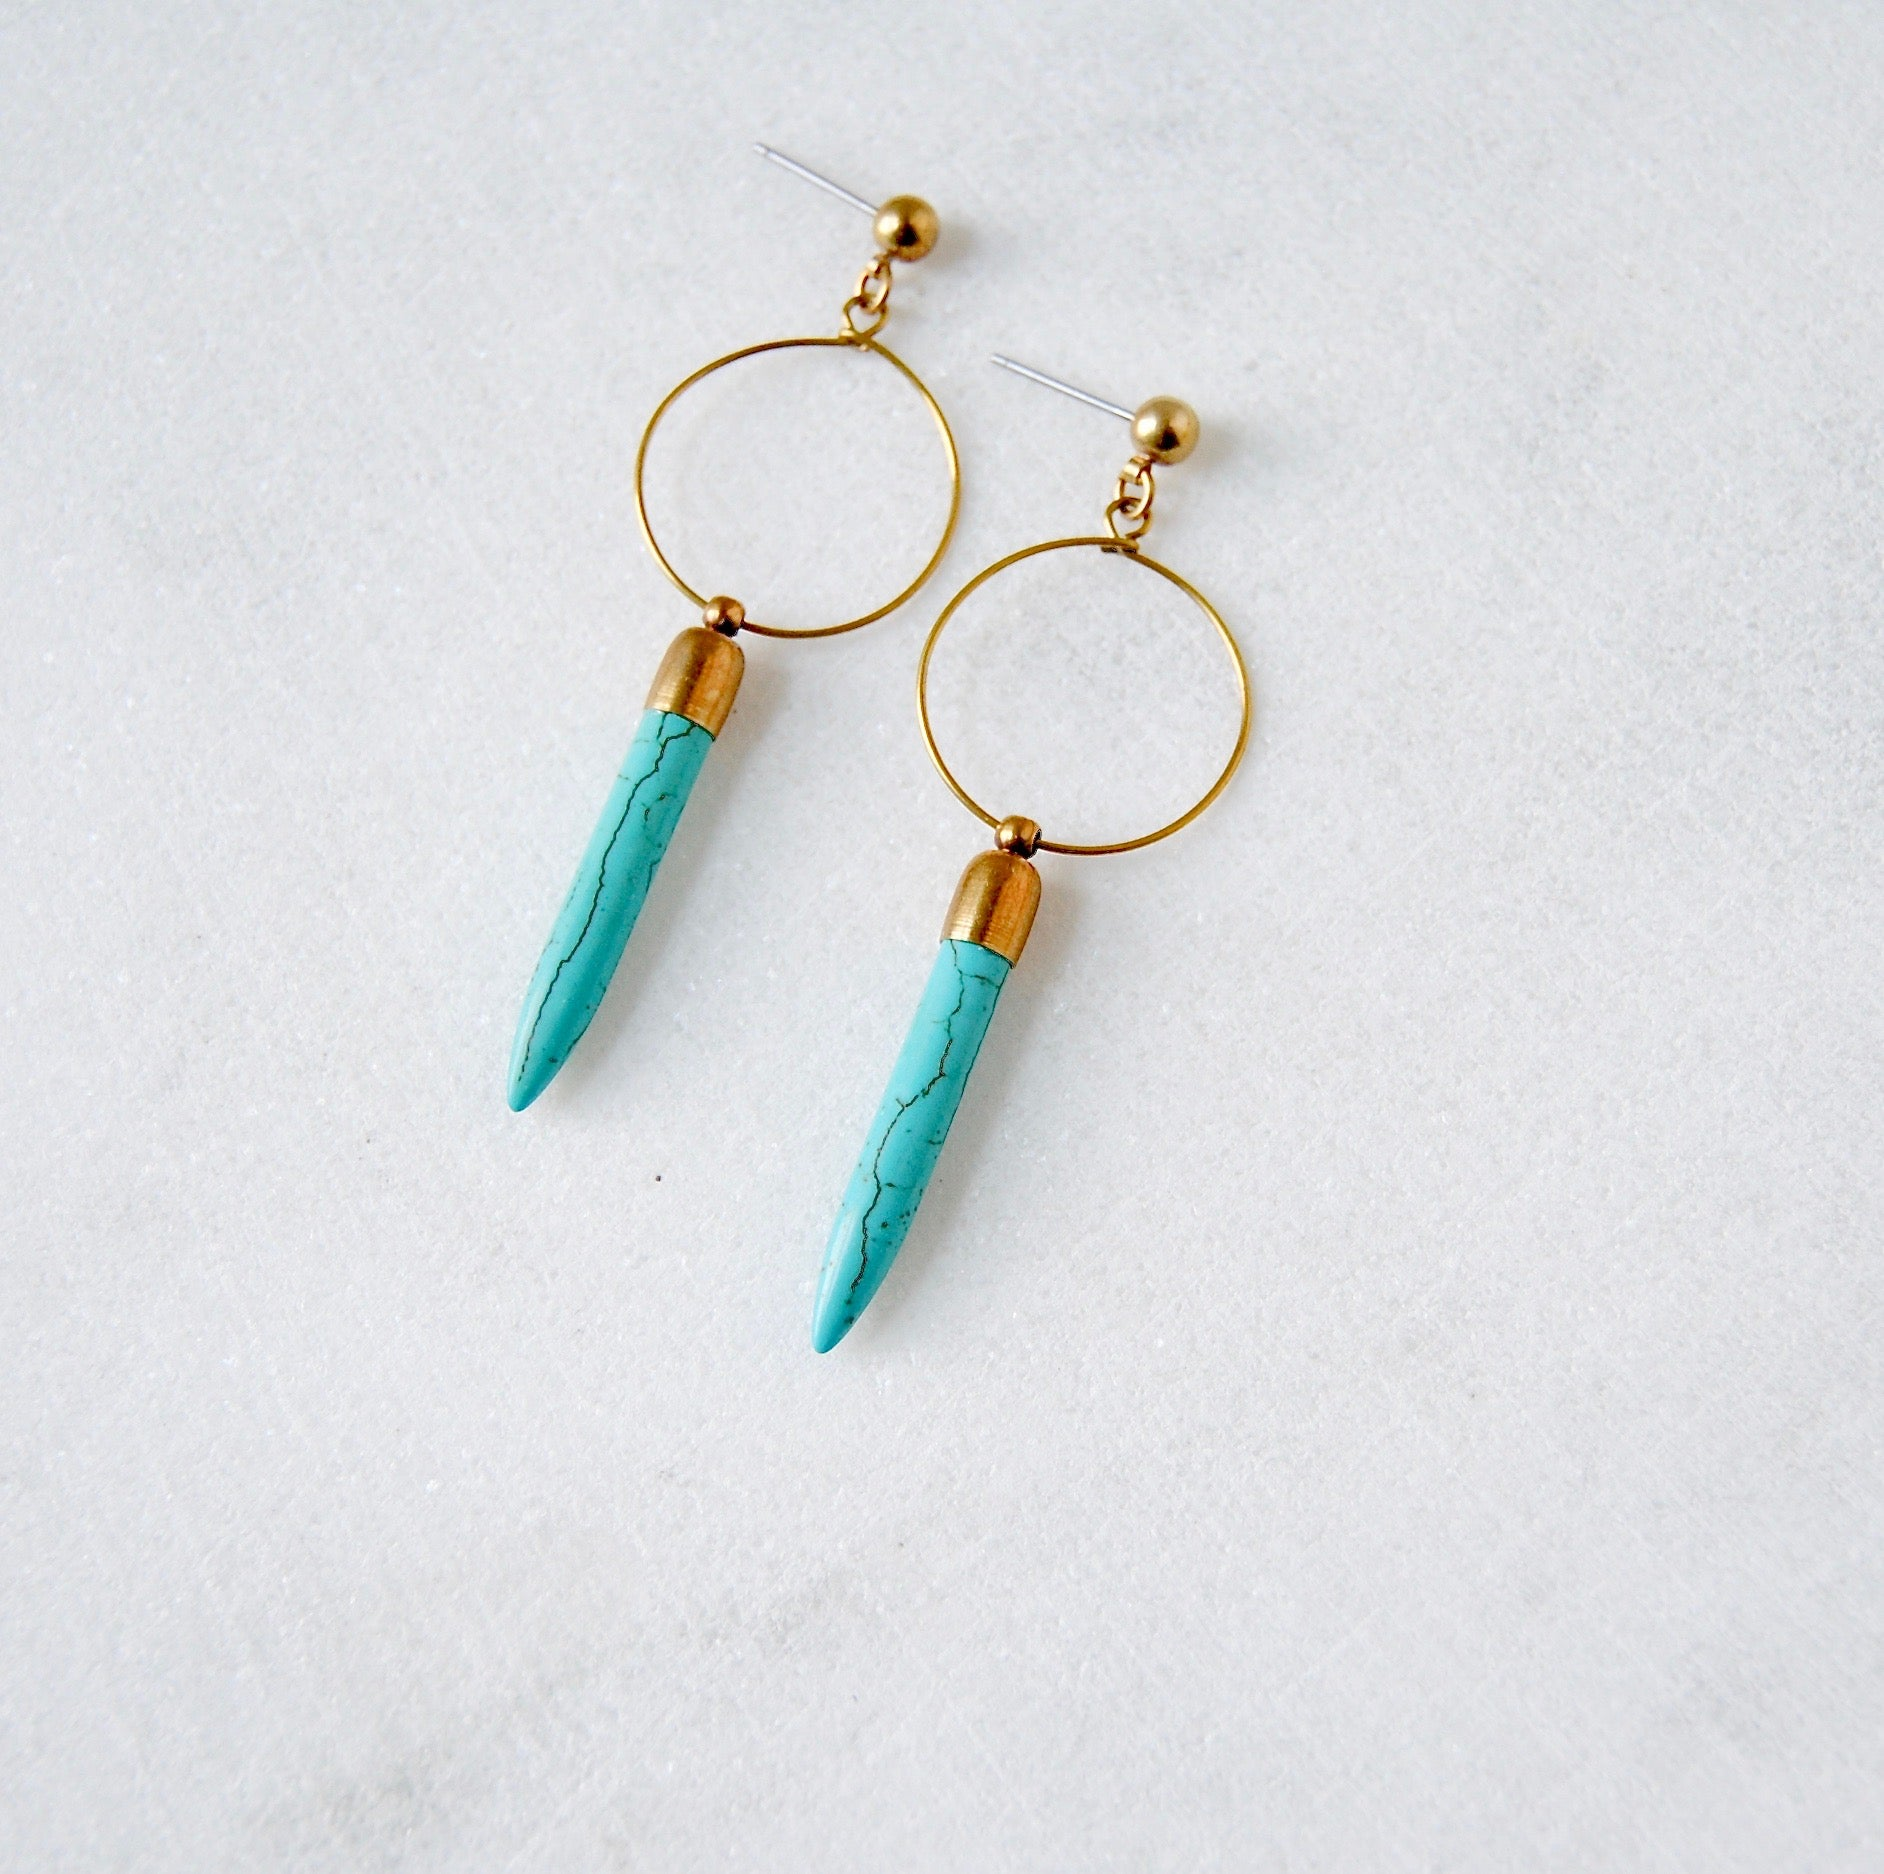 MODERN SOUTHWEST EARRINGS